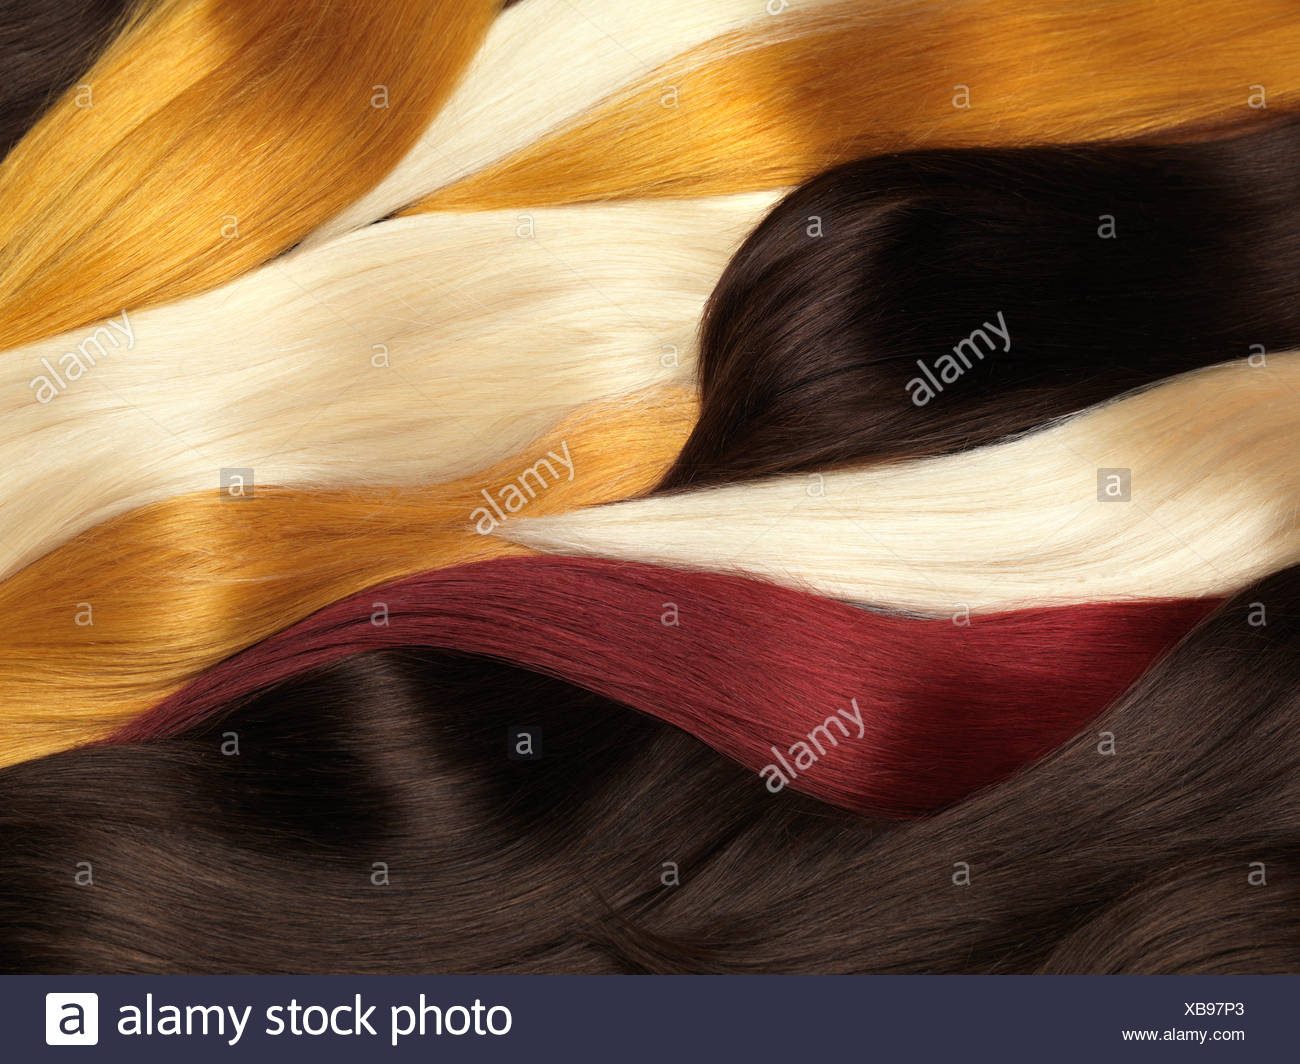 Natural Human Hair Extensions Of Different Colors Stock Photo